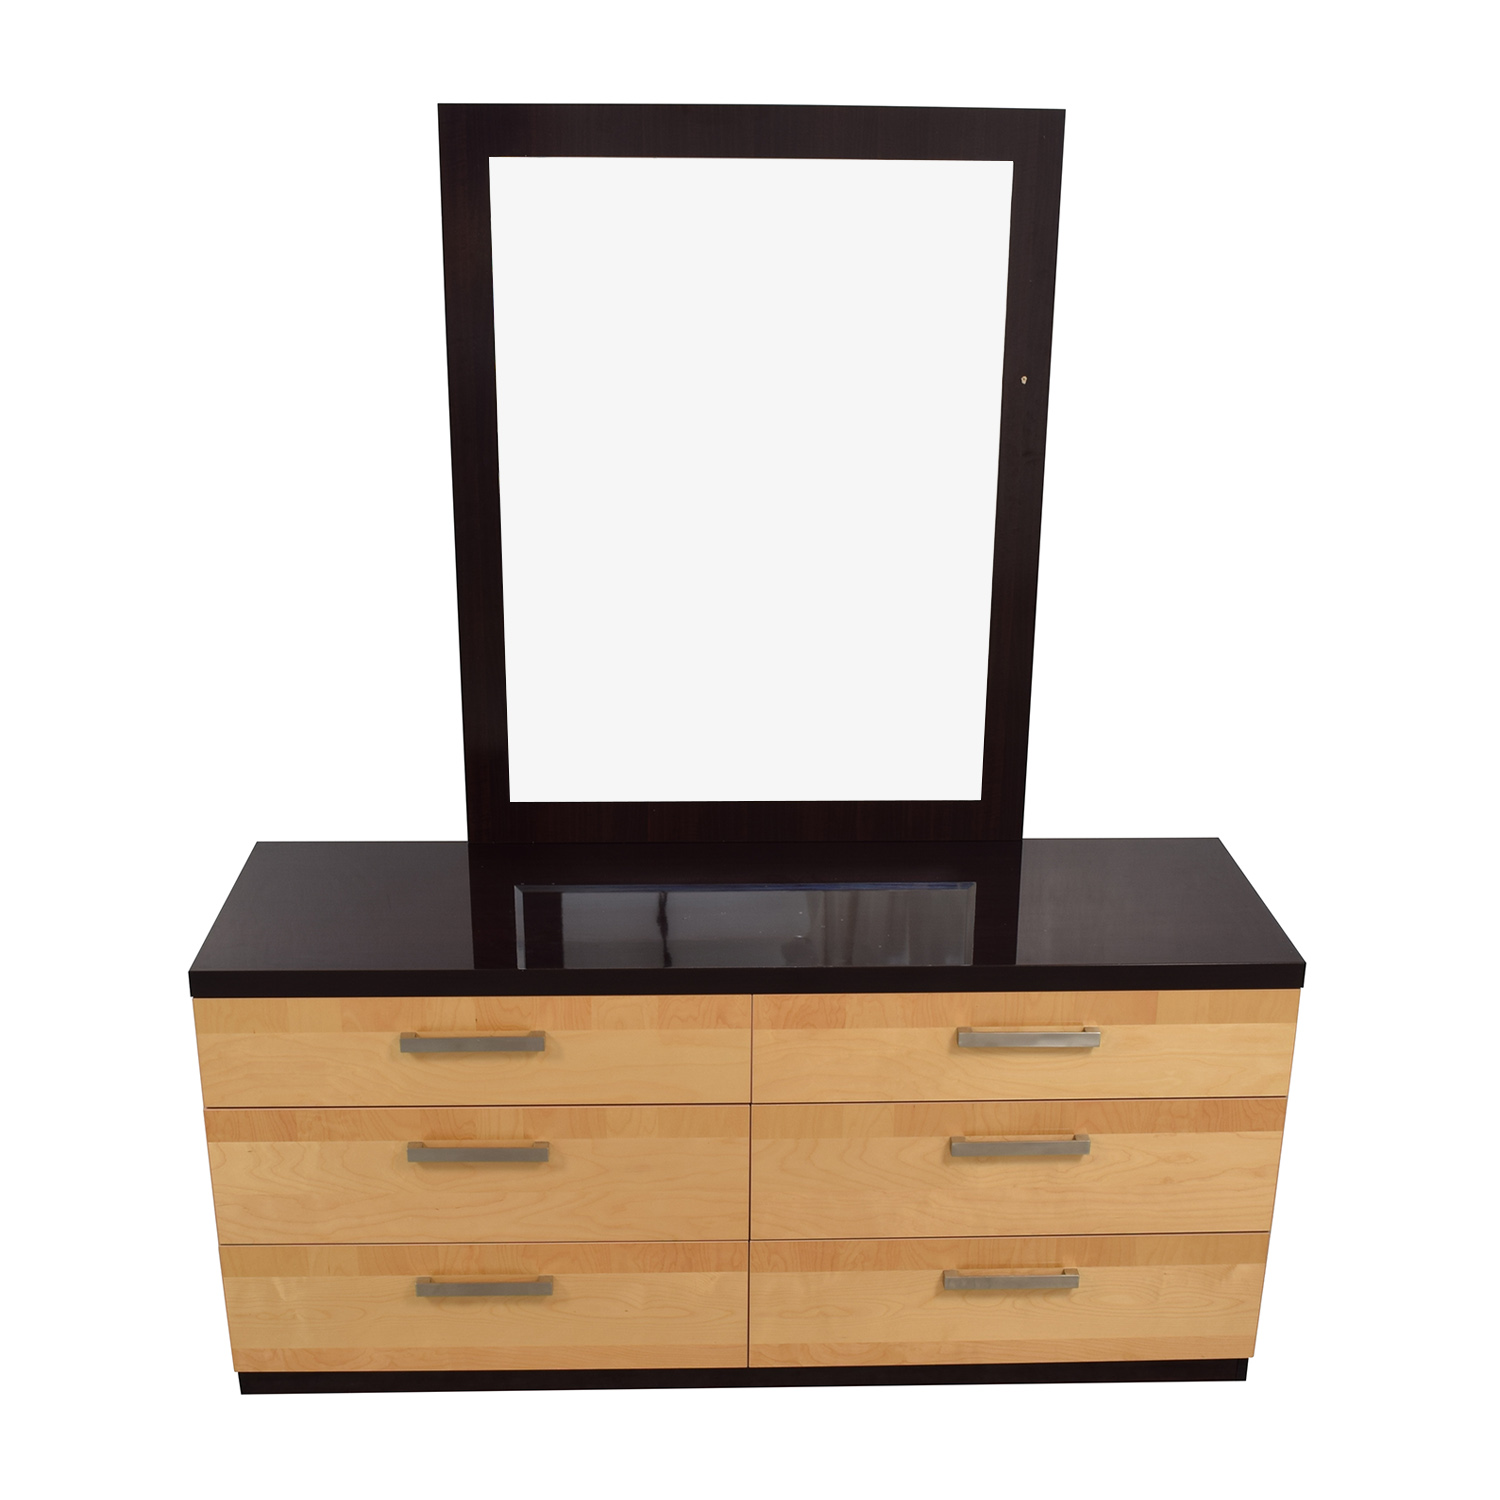 shop Design Group Italian Lacquered Six-Drawer Dresser with Mirror Design Group Sofas